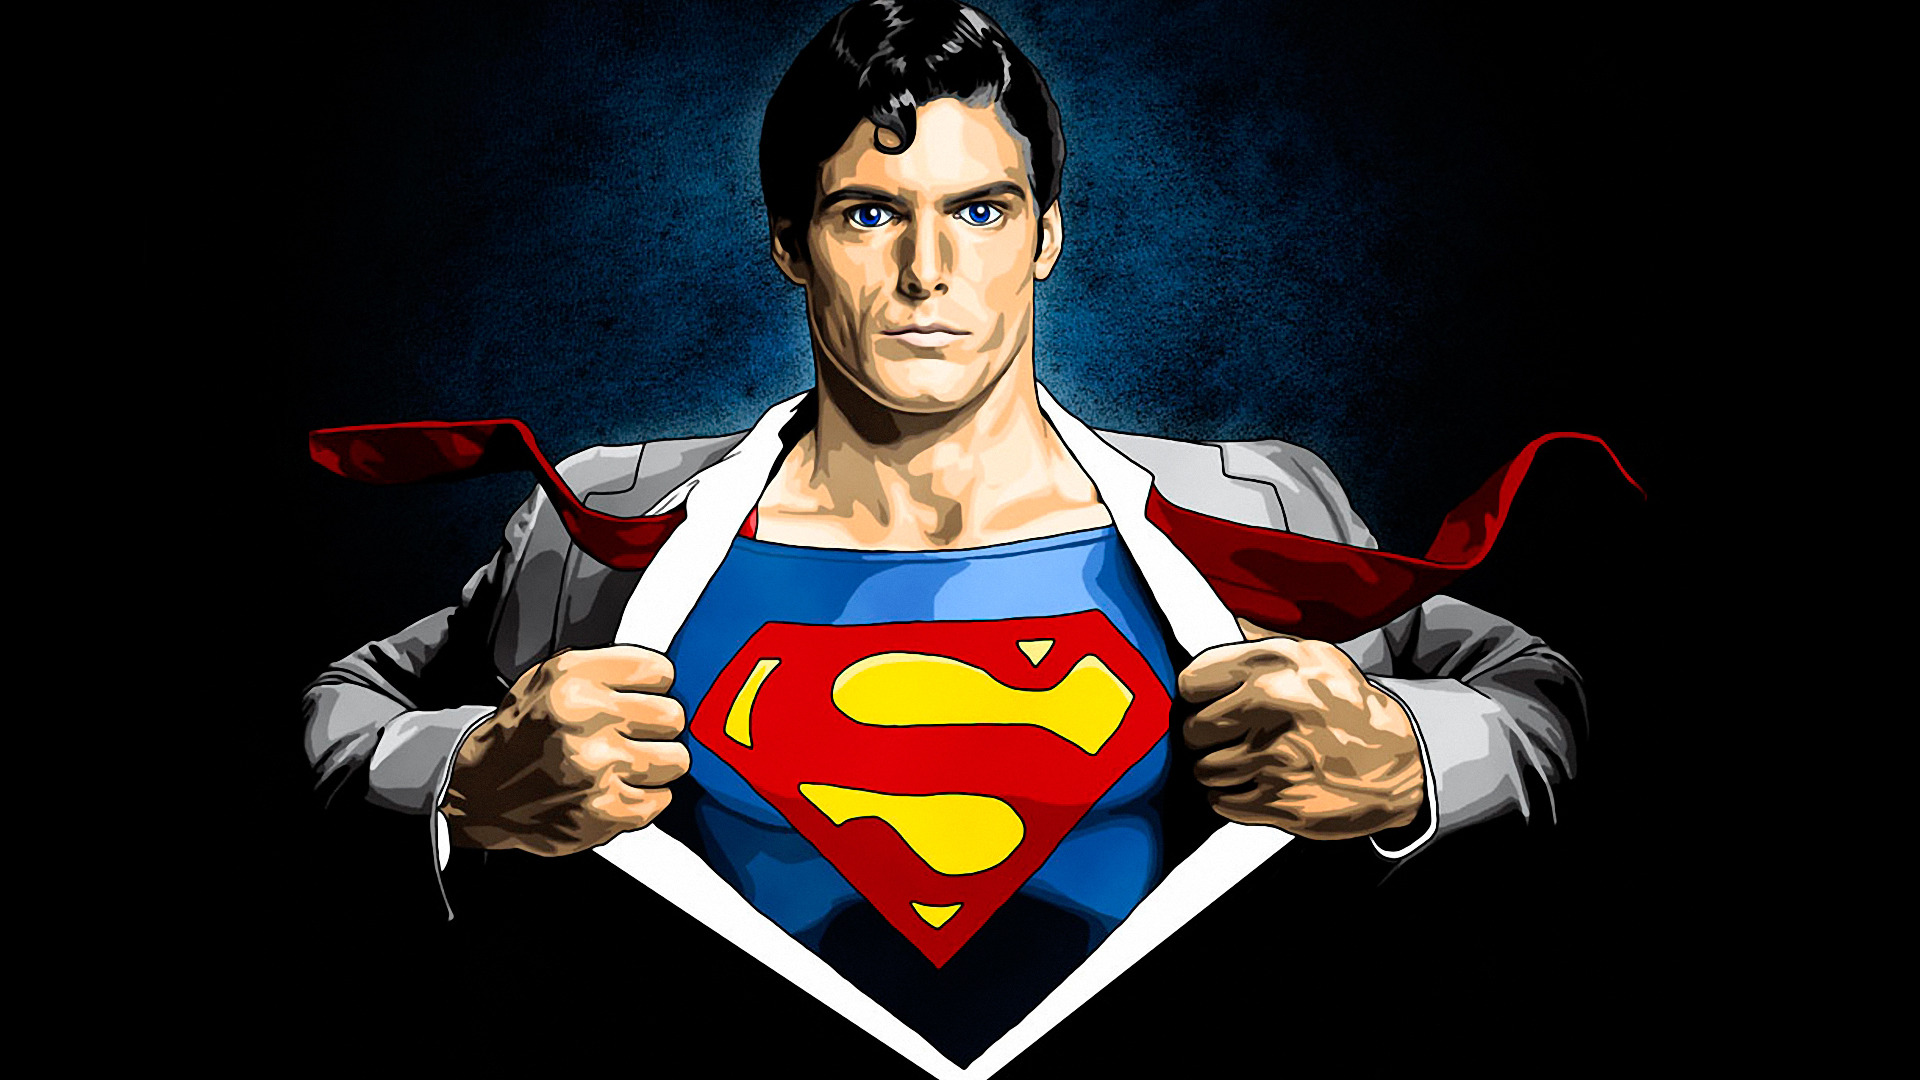 an analysis of the topic of the clark kent character from the comic book superman